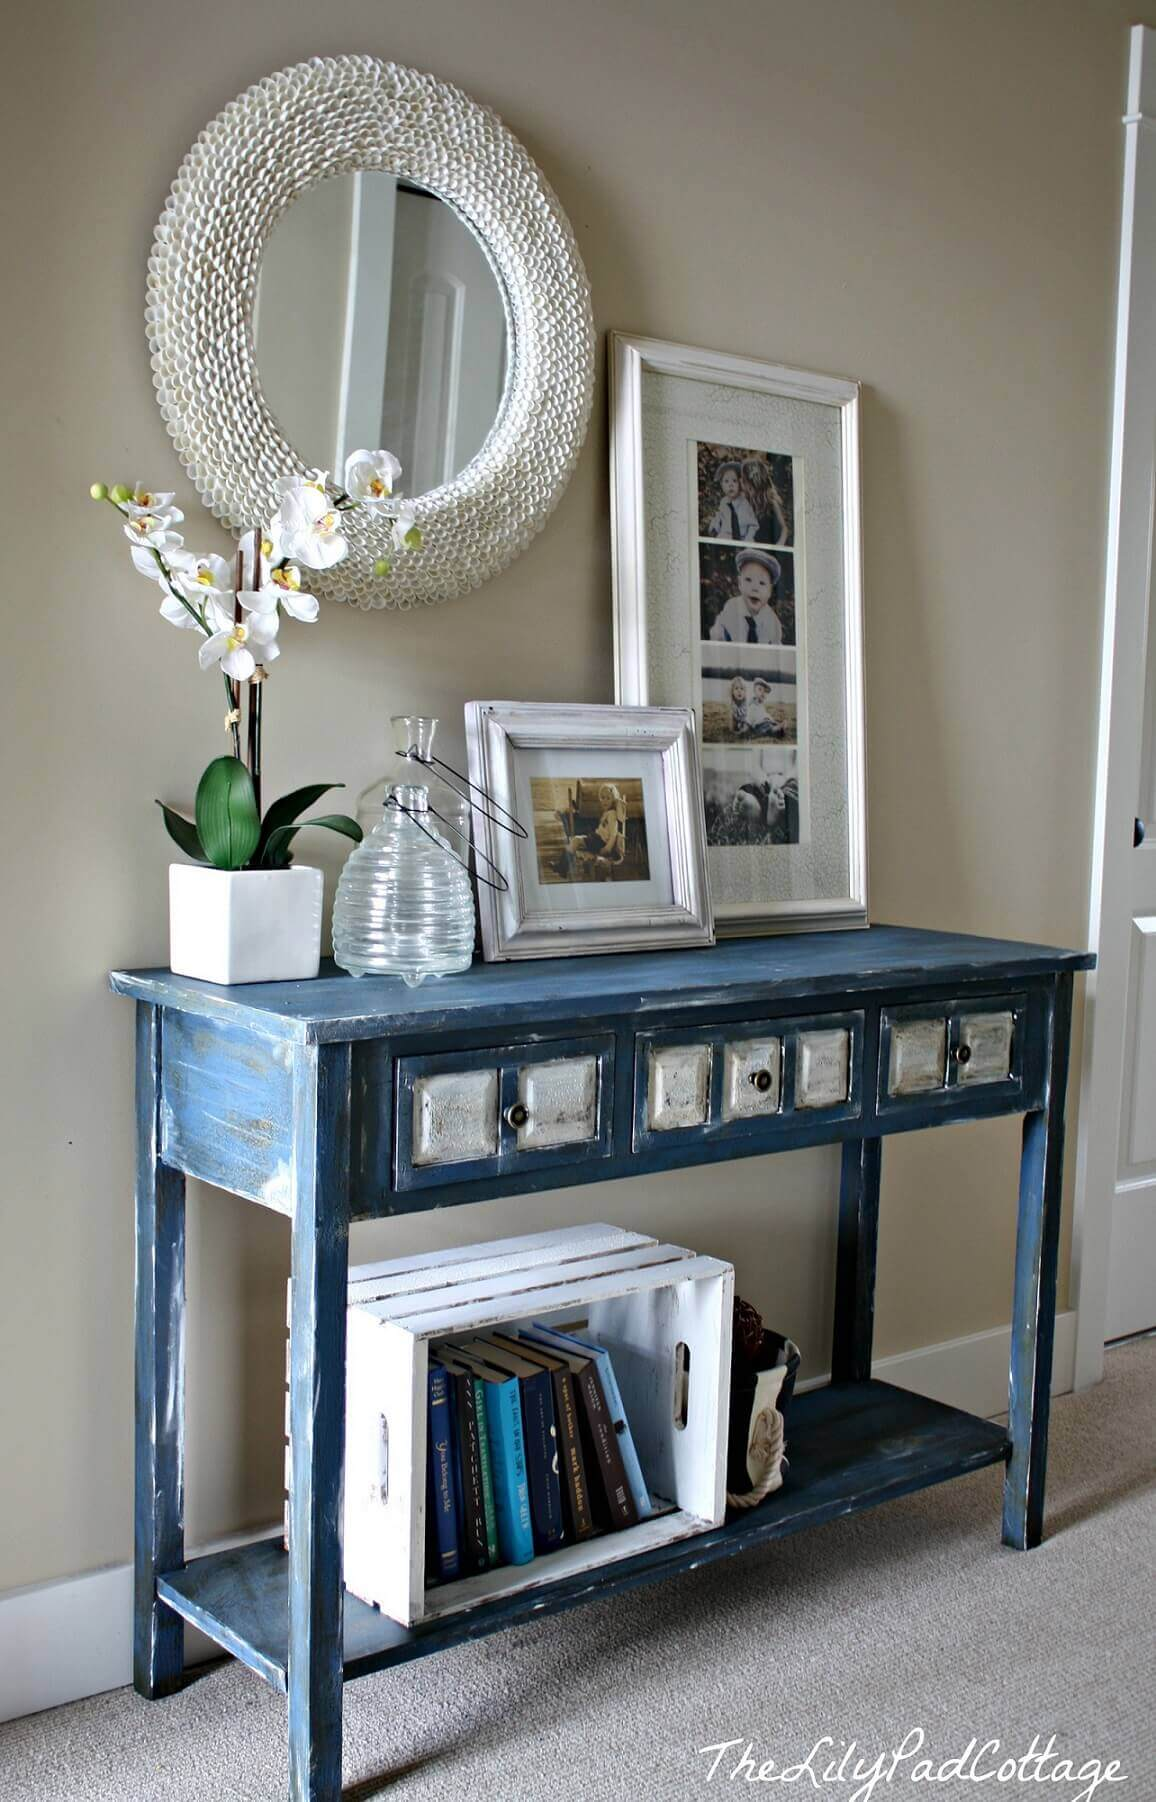 White Décor Accents on Distressed Blue Entry